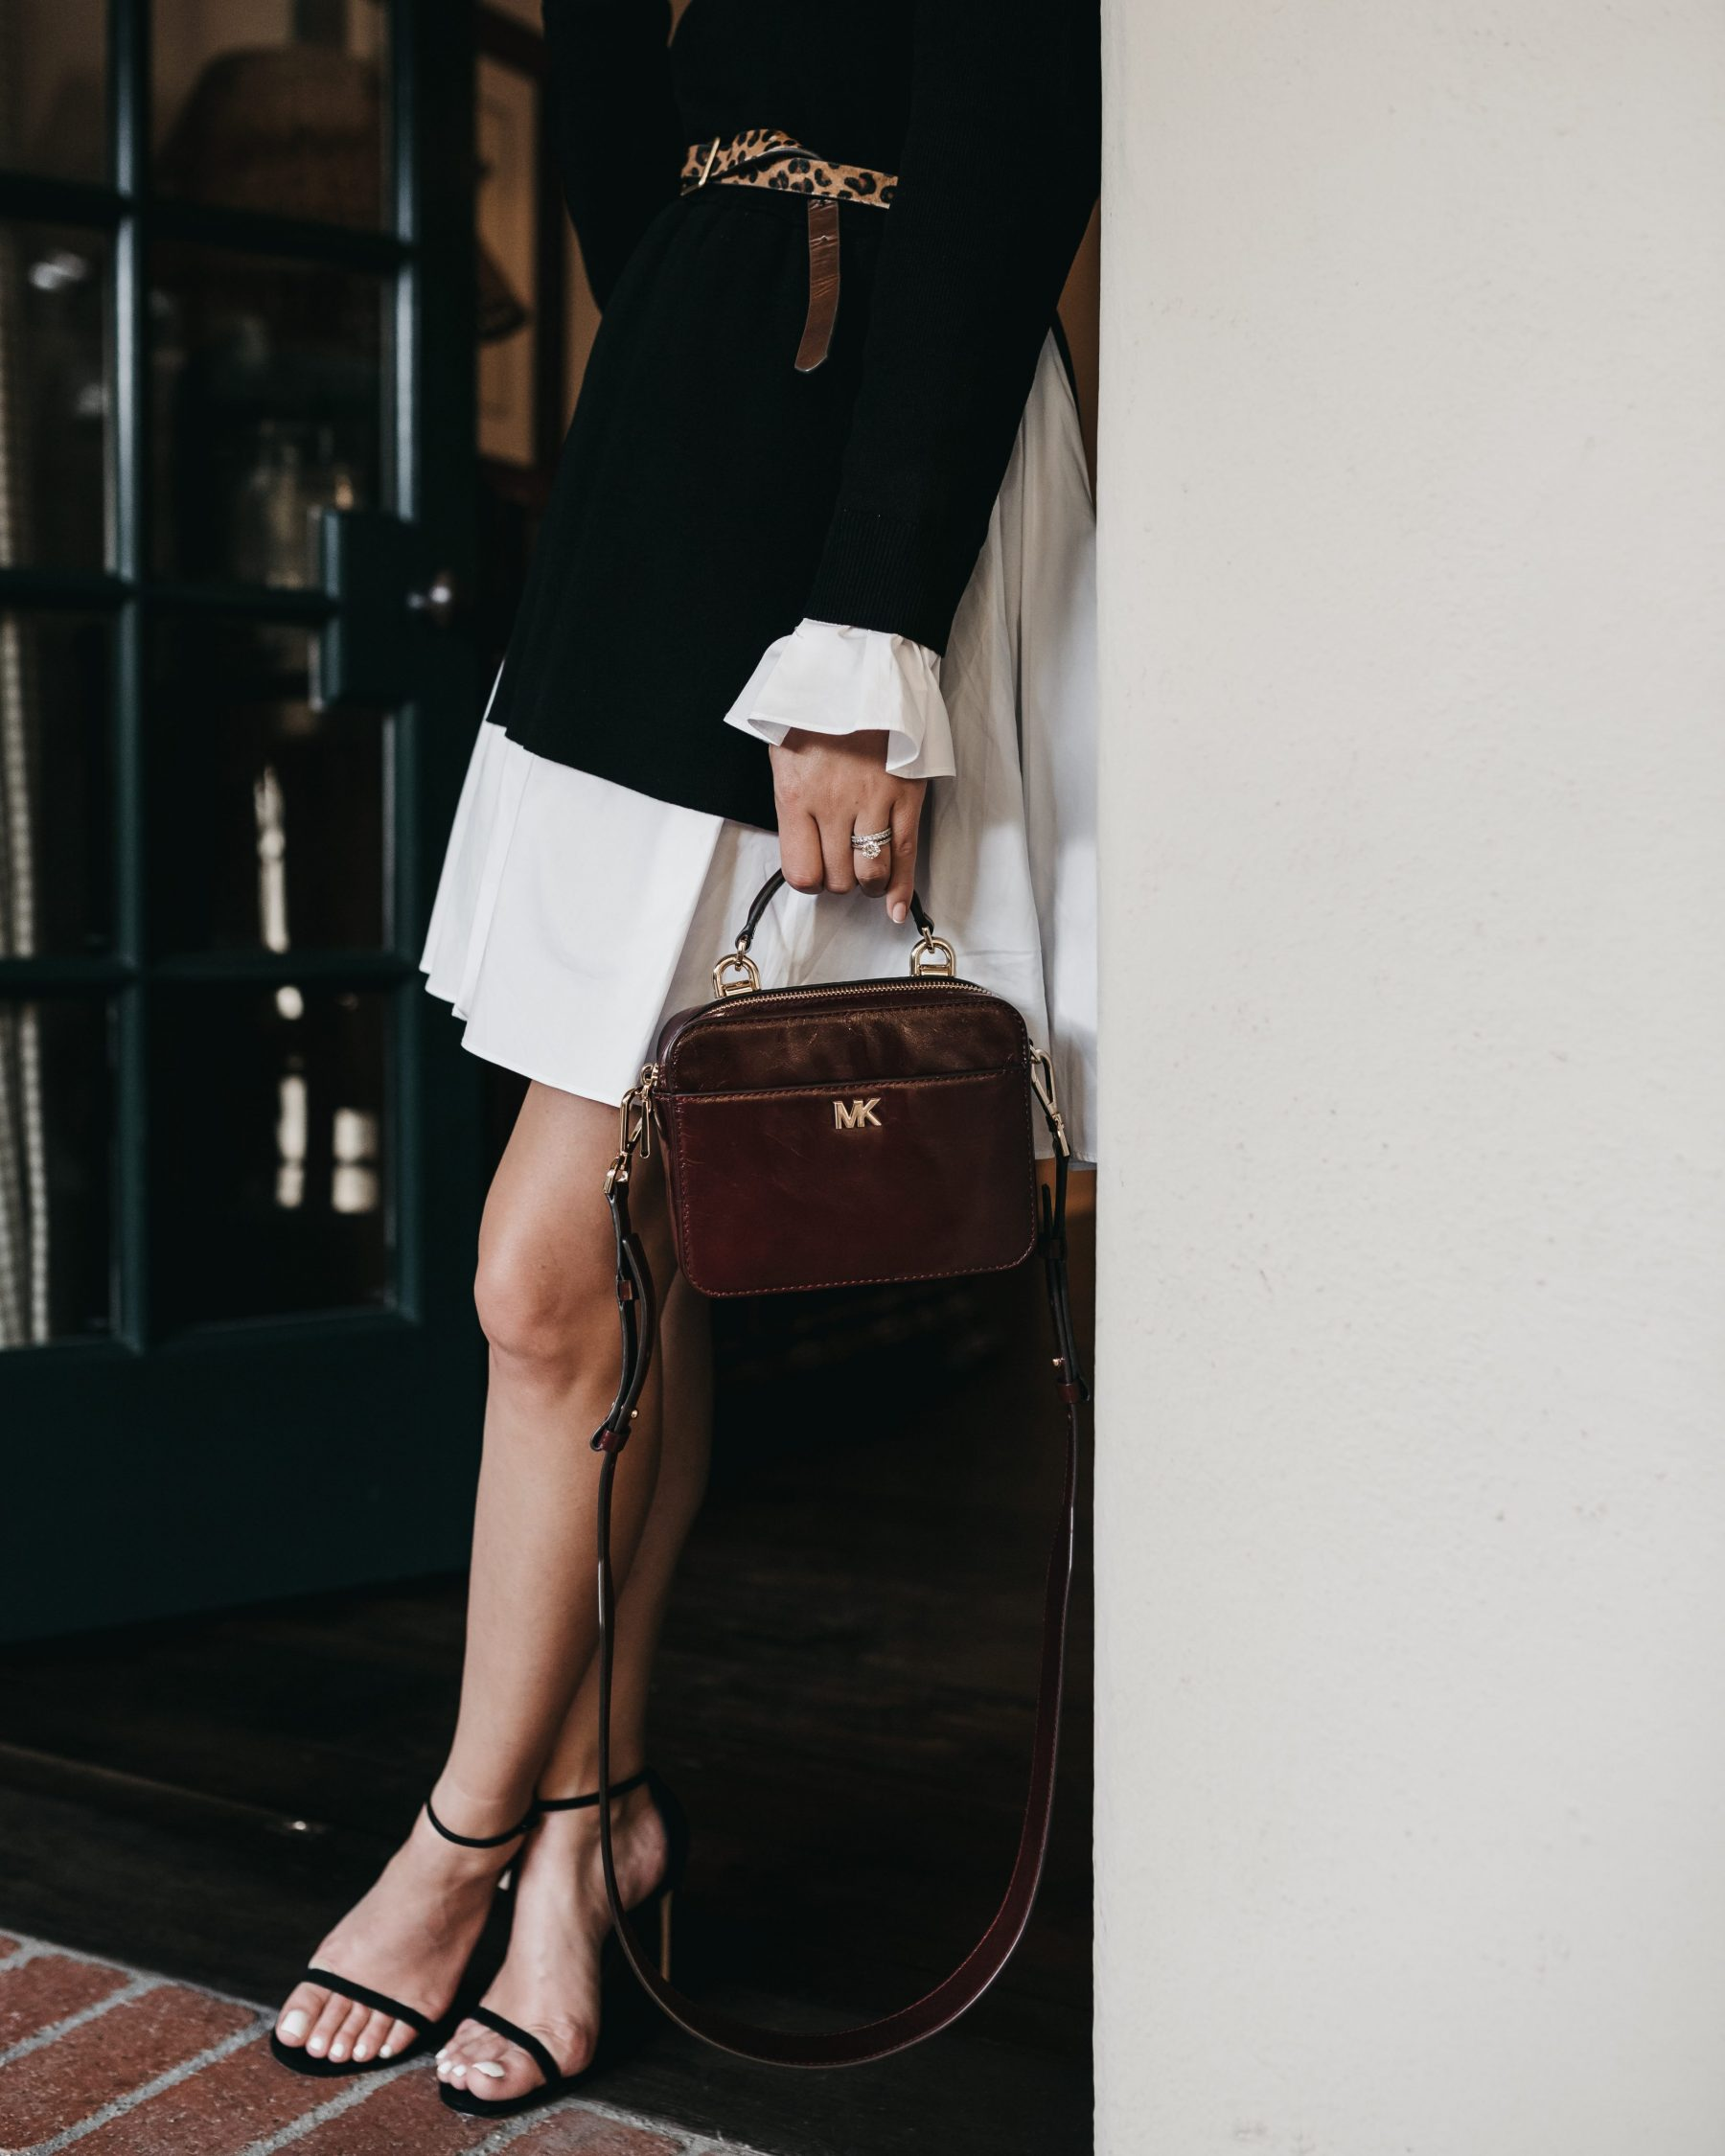 Houston fashion blogger Uptown with Elly Brown wears a MICHAEL KORS Mott Mini oxford leather Crossbody